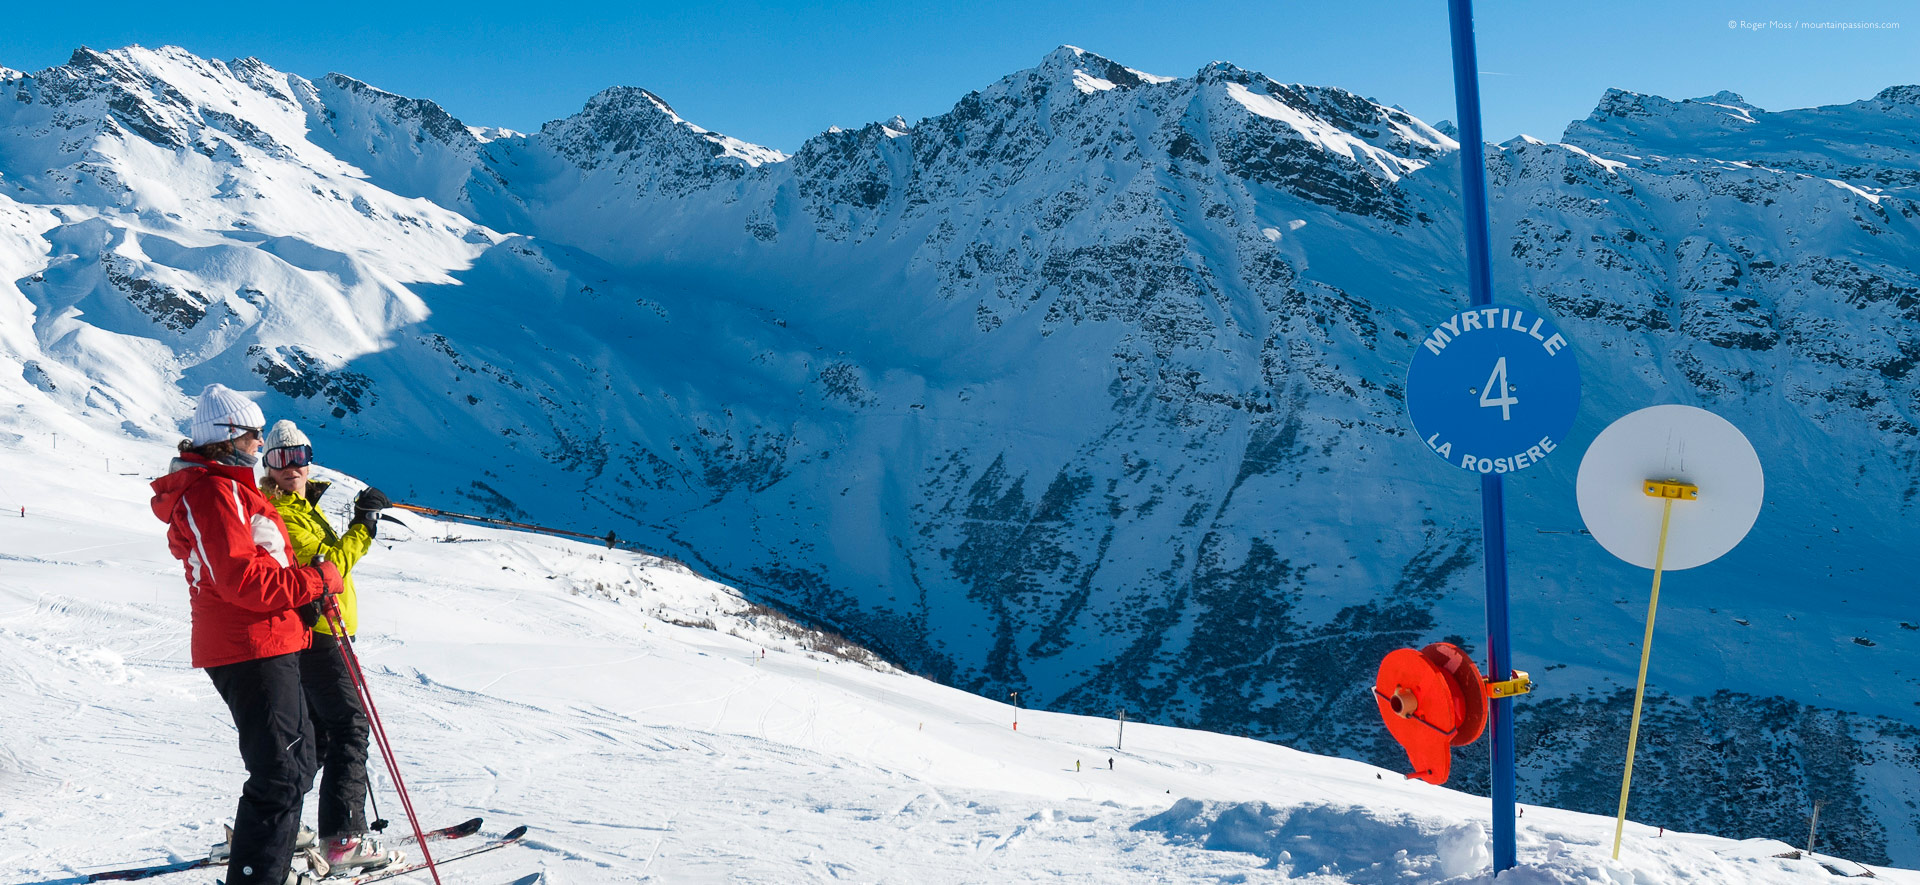 Skier above ski chalets with mountains in background at La Rosiere.